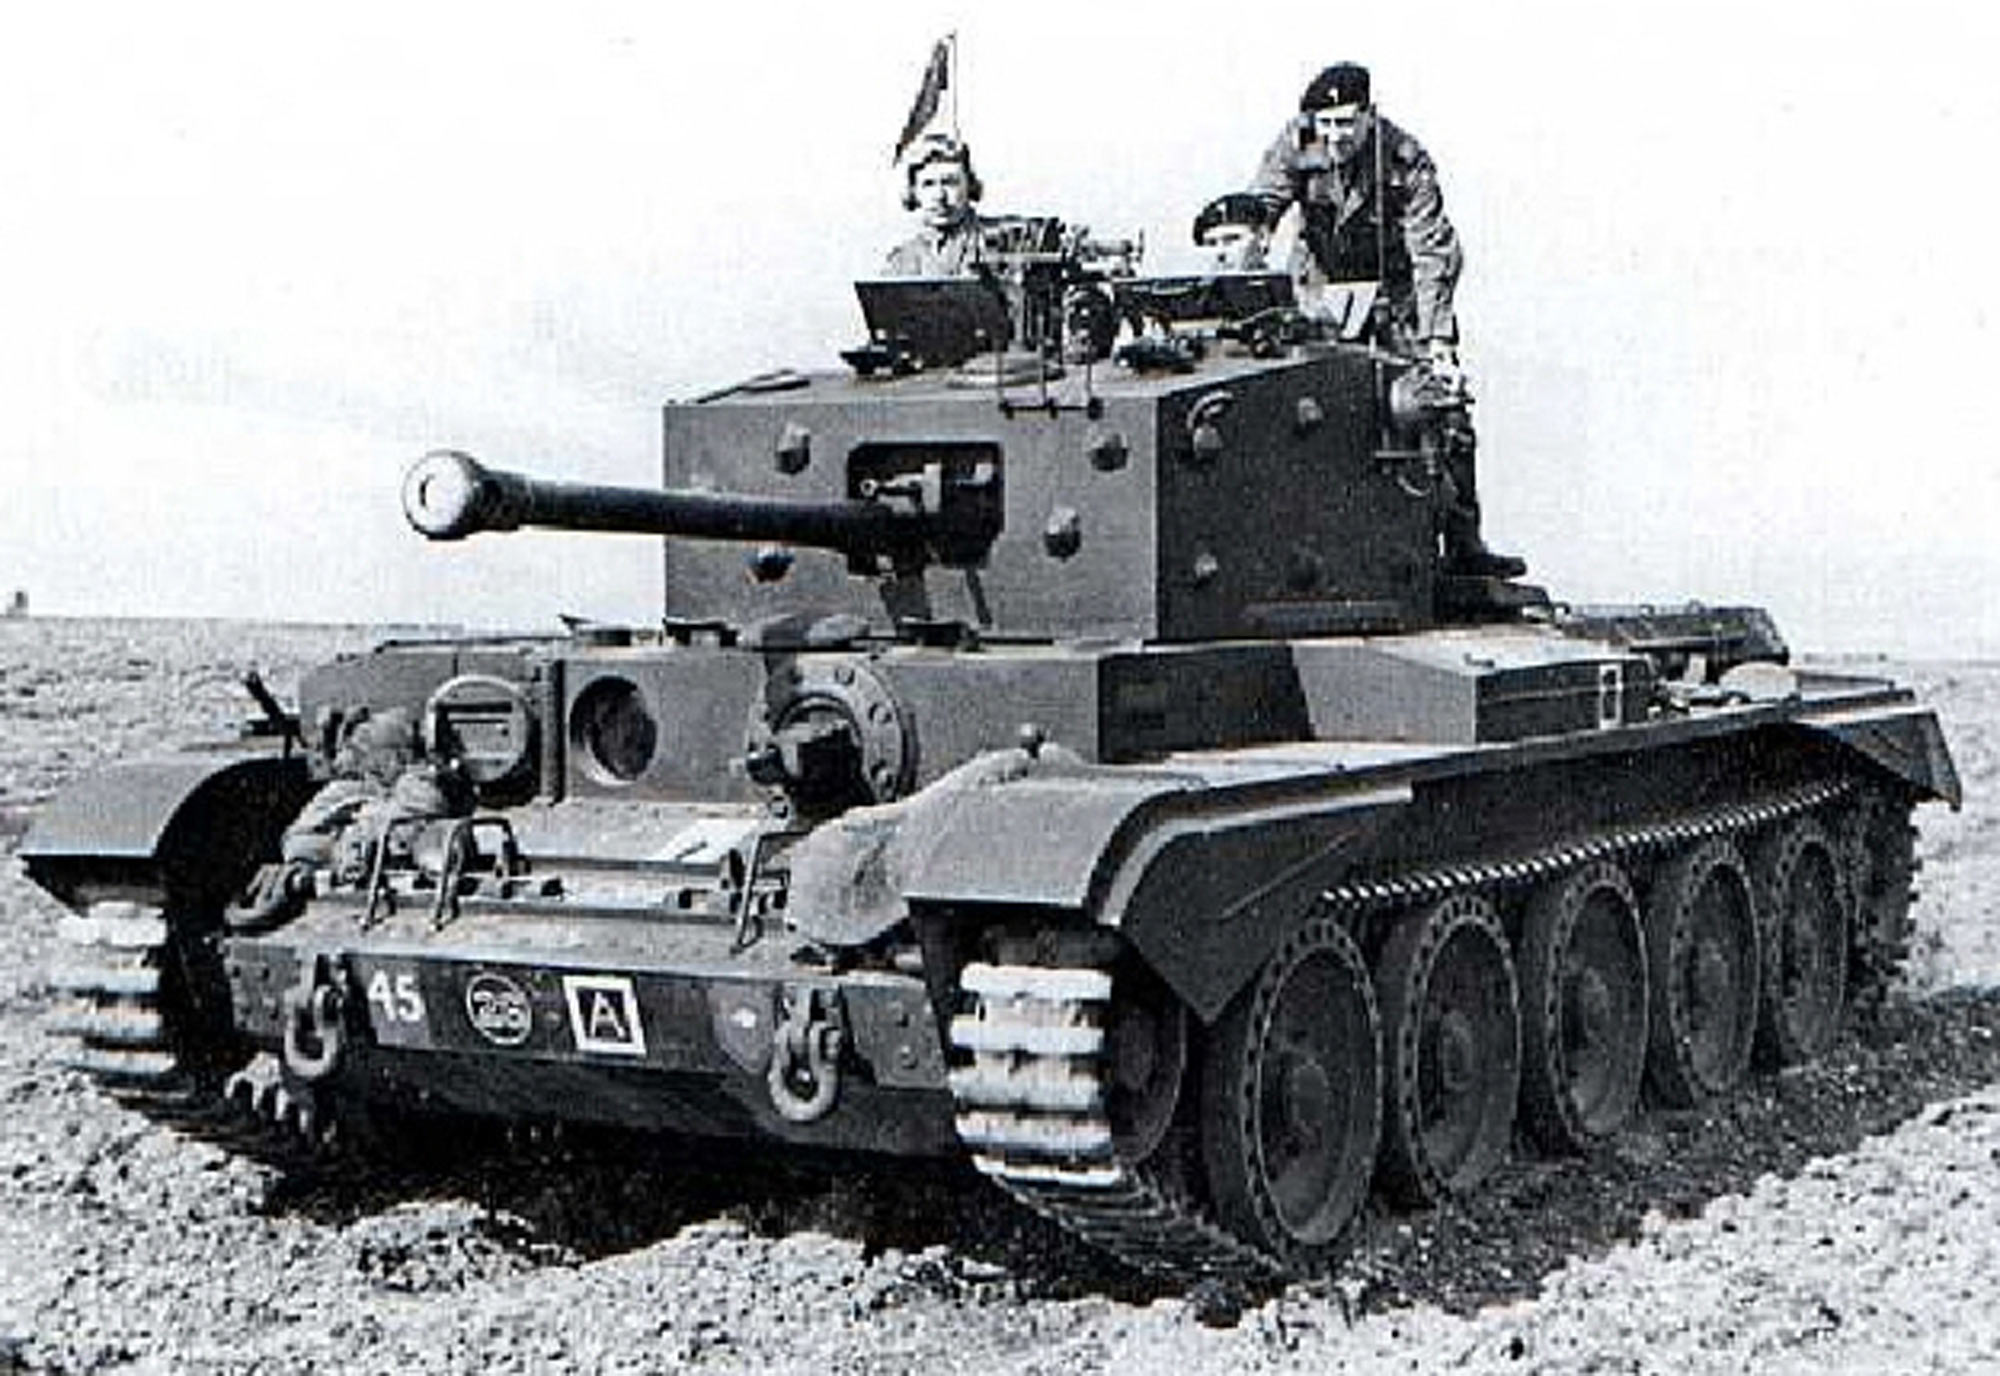 A Welsh Guards Cromwell Tank in 1944 (not Lord Griffiths')